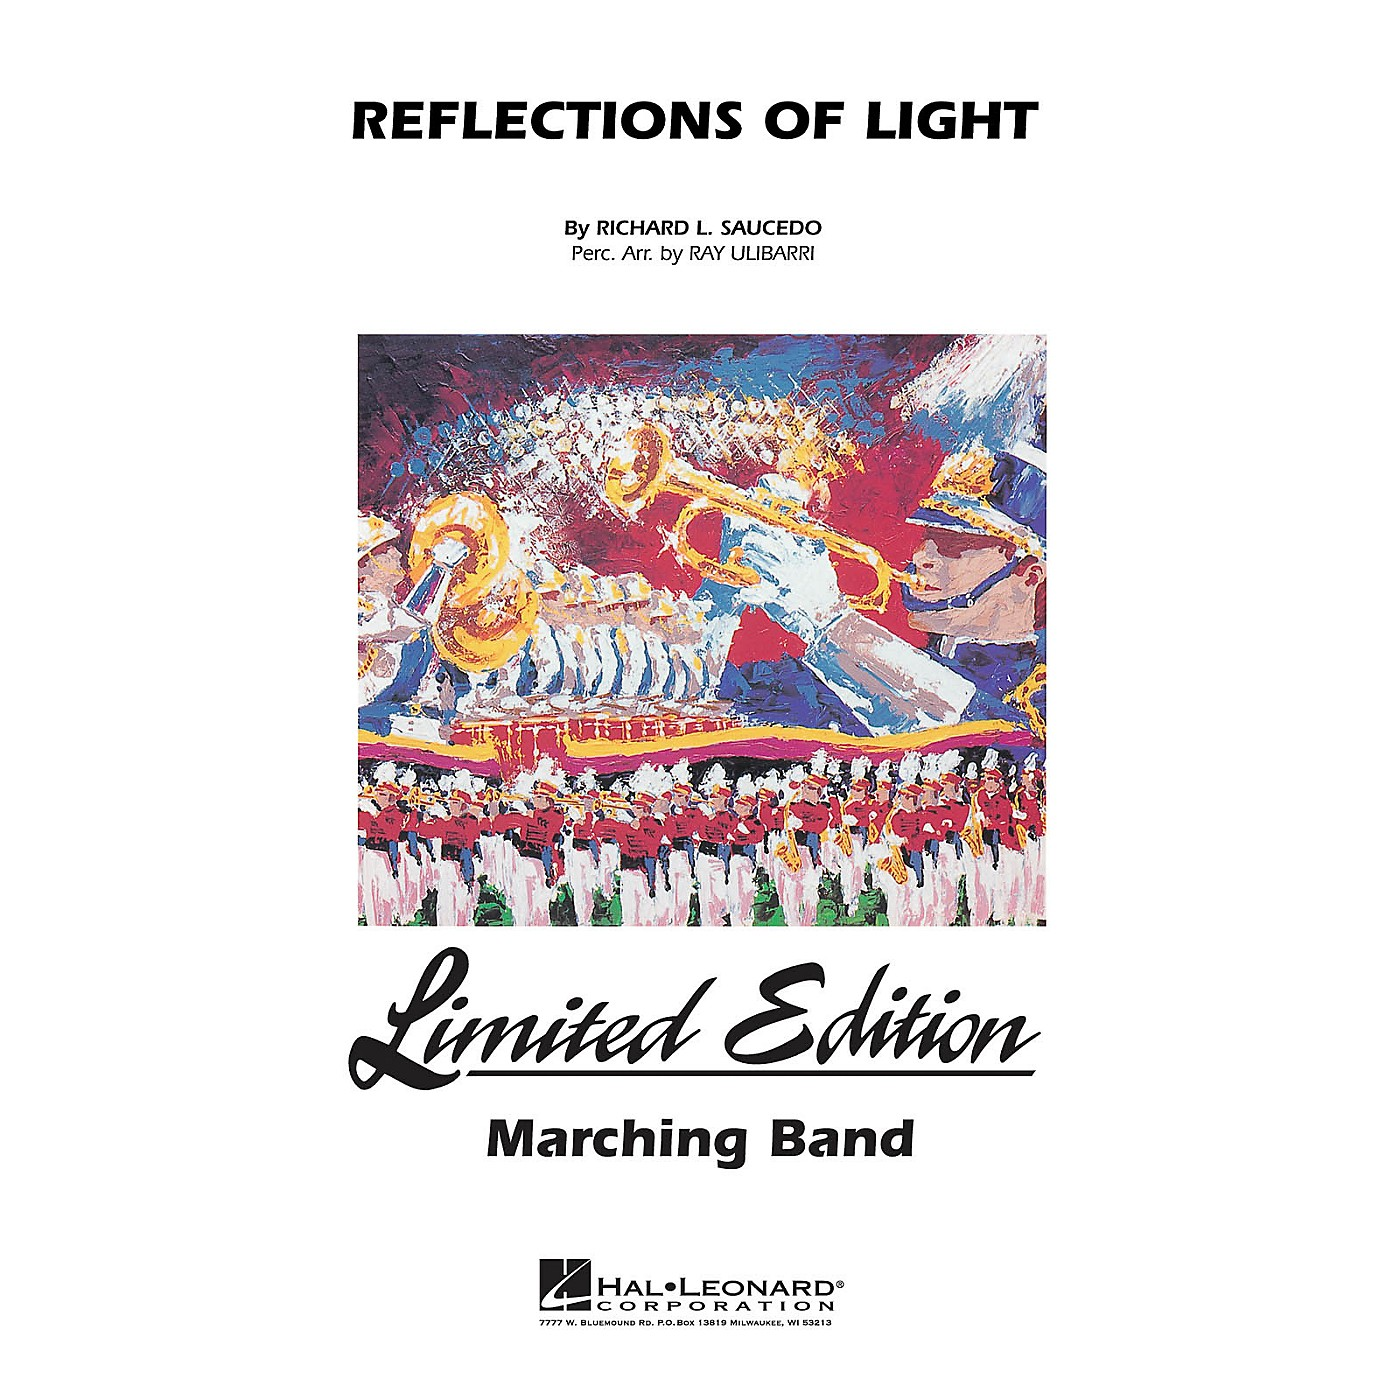 Hal Leonard Reflections of Light Marching Band Level 5 Composed by Richard Saucedo thumbnail